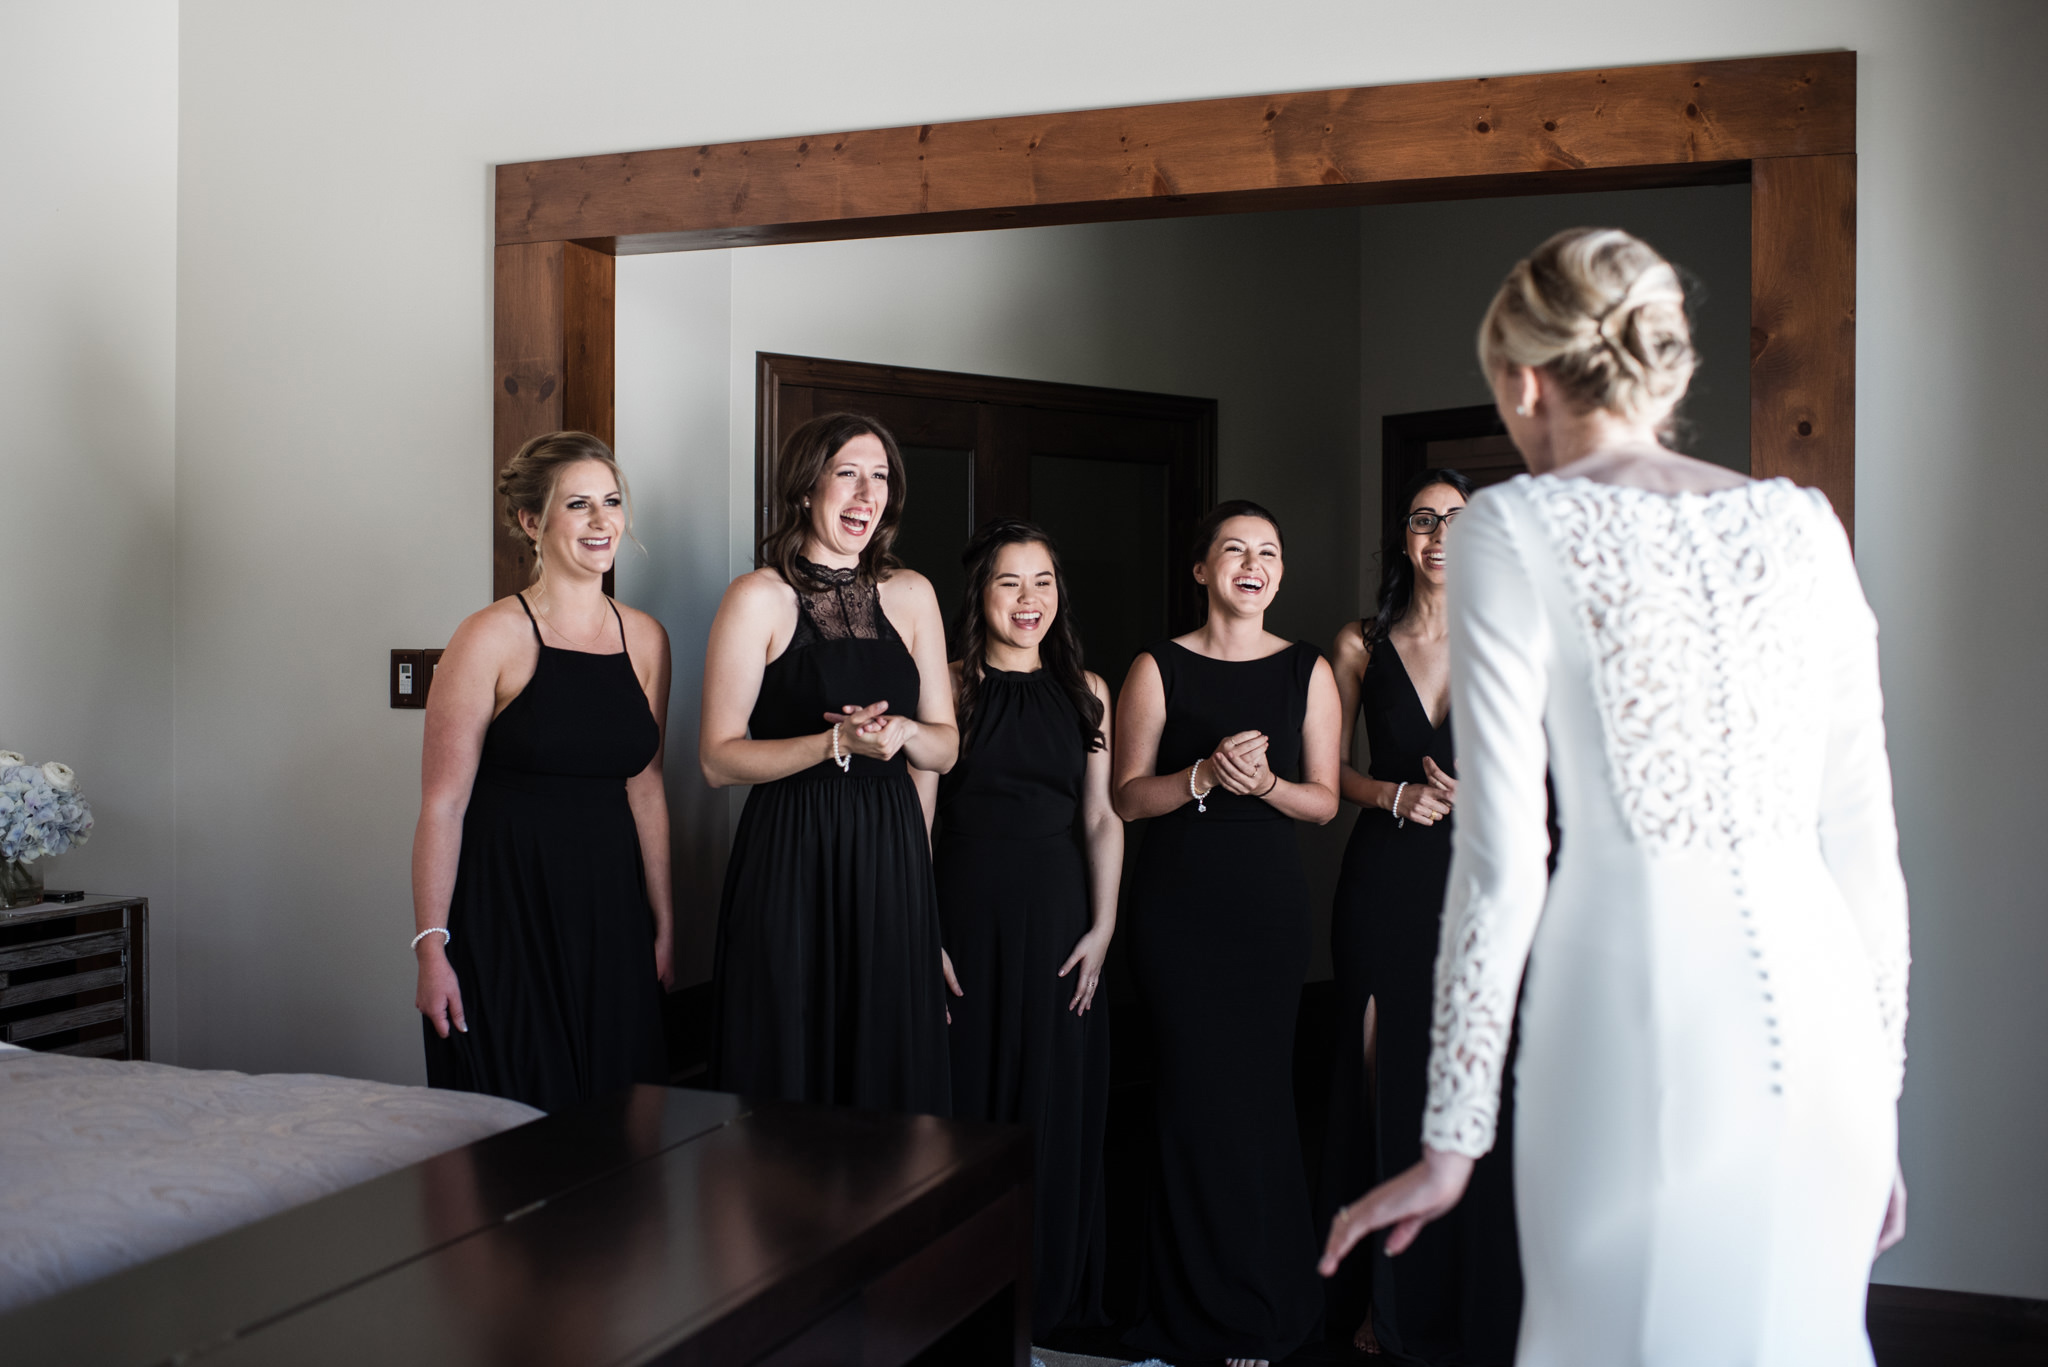 063-bridesmaids-first-look-with-bride-toronto-wedding-photographer.jpg